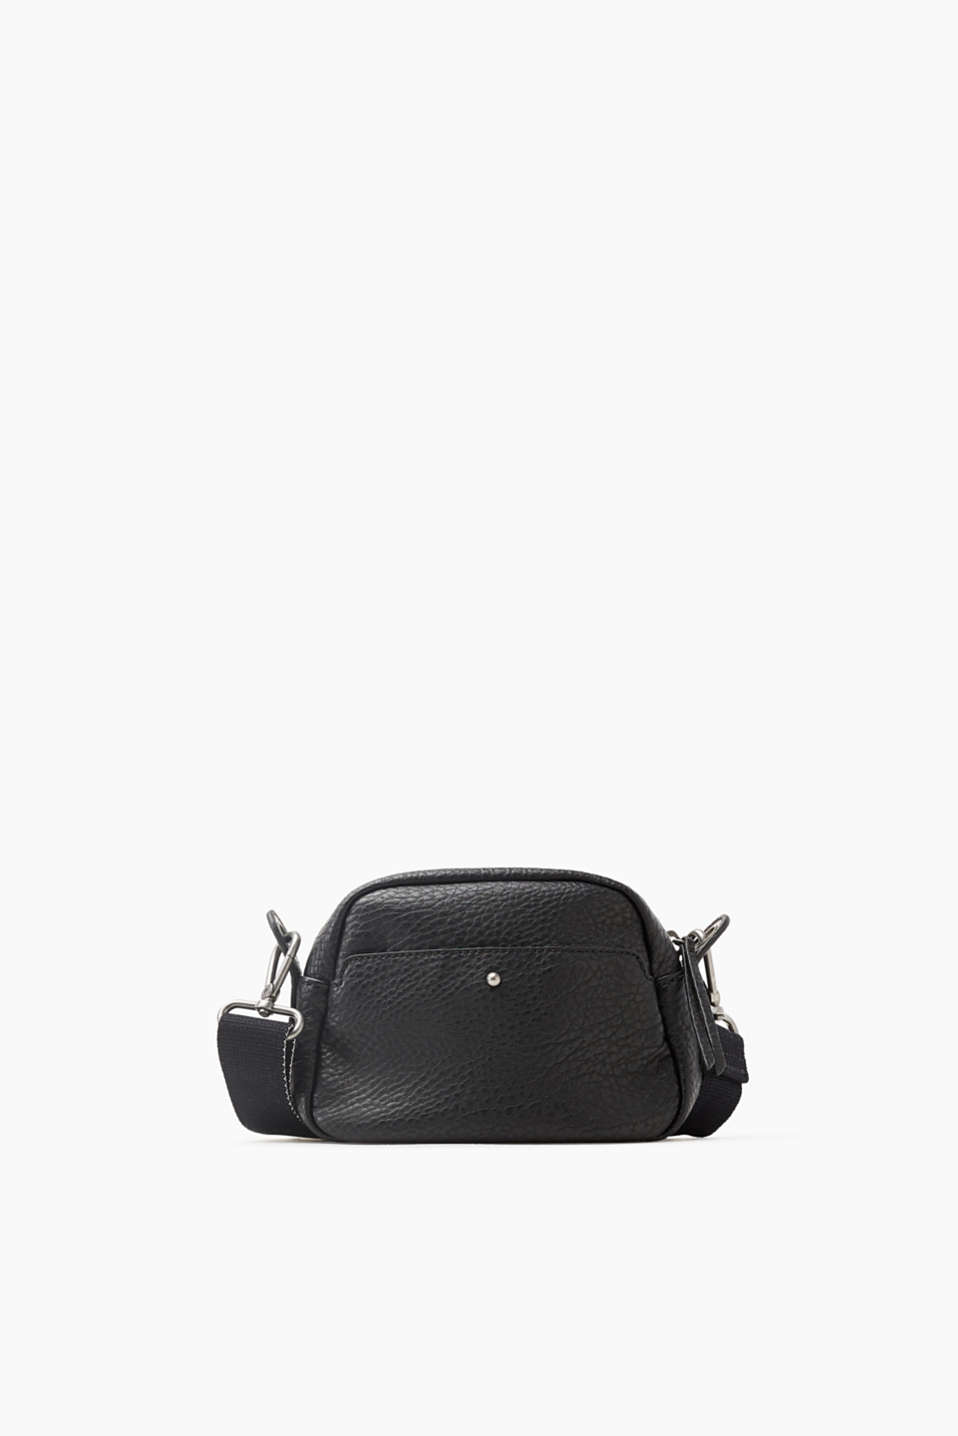 Functional and versatile: Small shoulder bag in coarse-grained faux leather with a woven shoulder strap